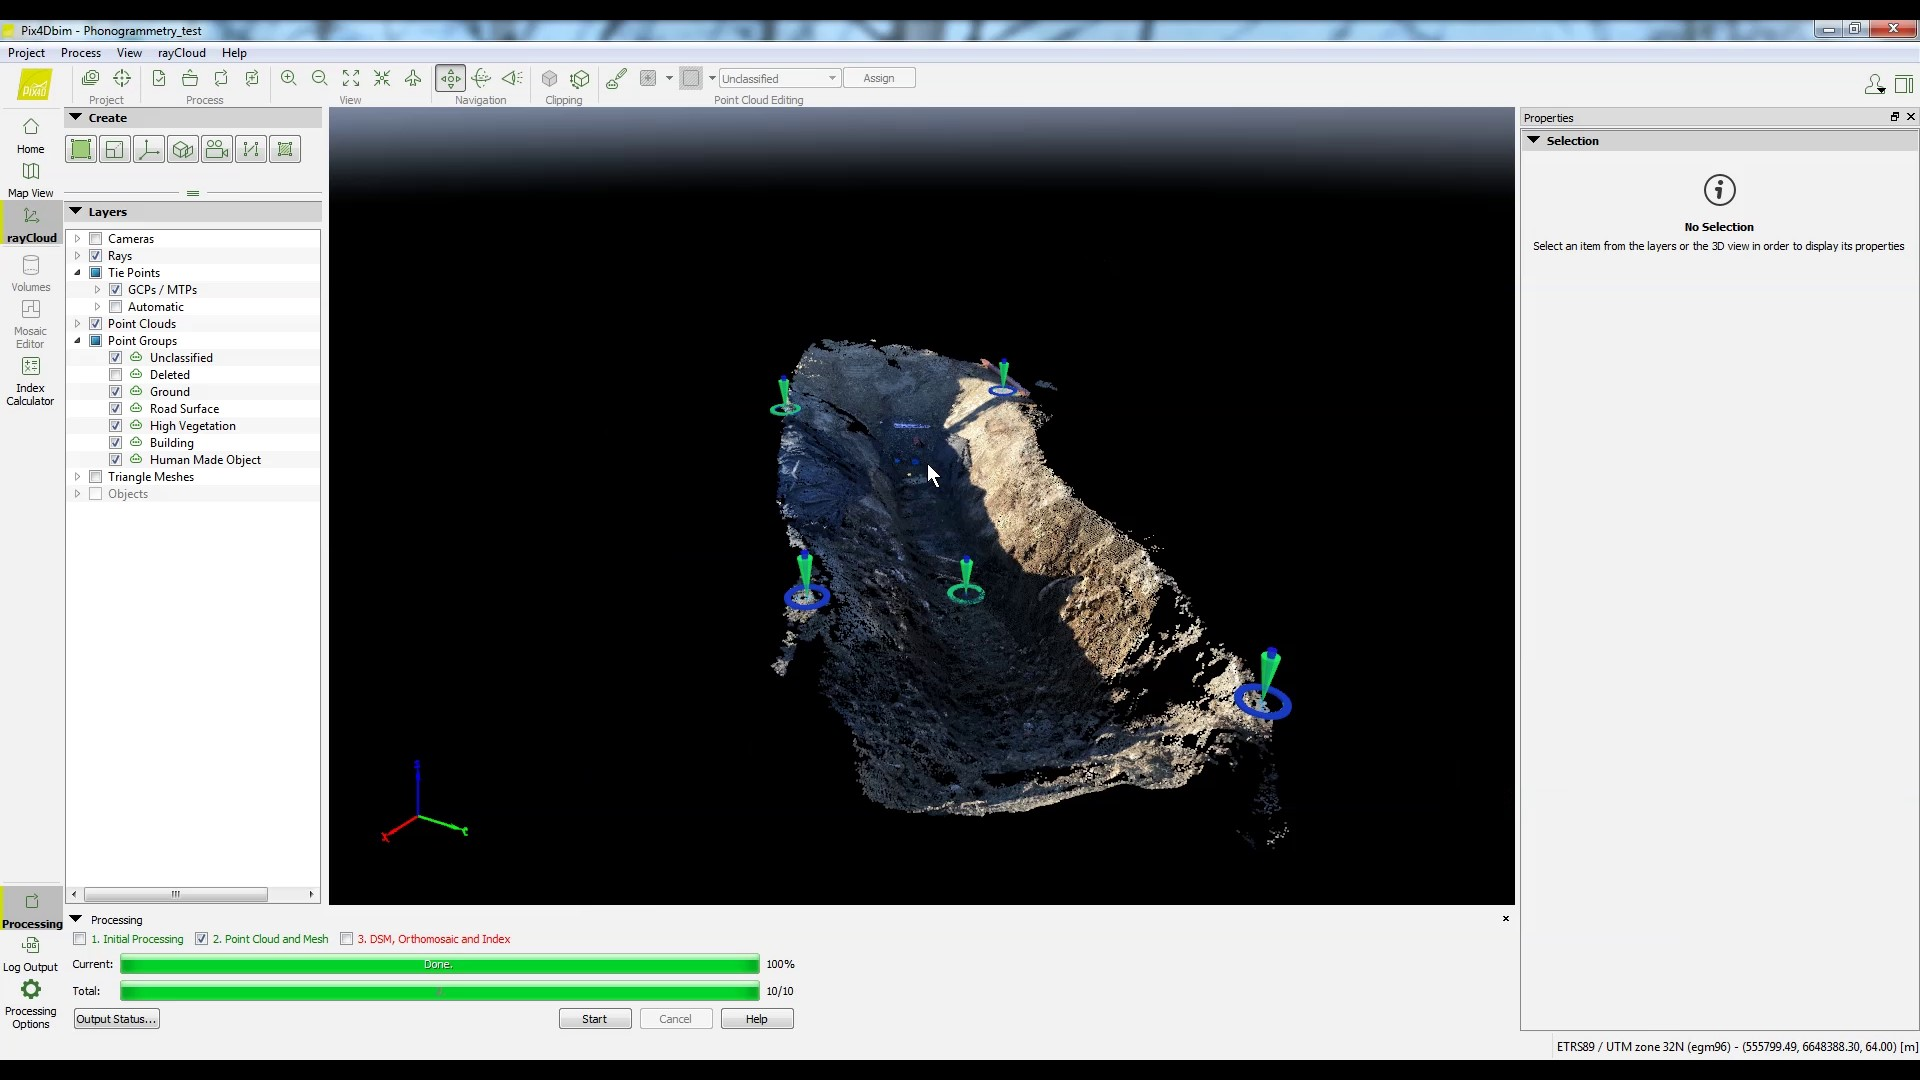 processing a map acquired by videogrammetry